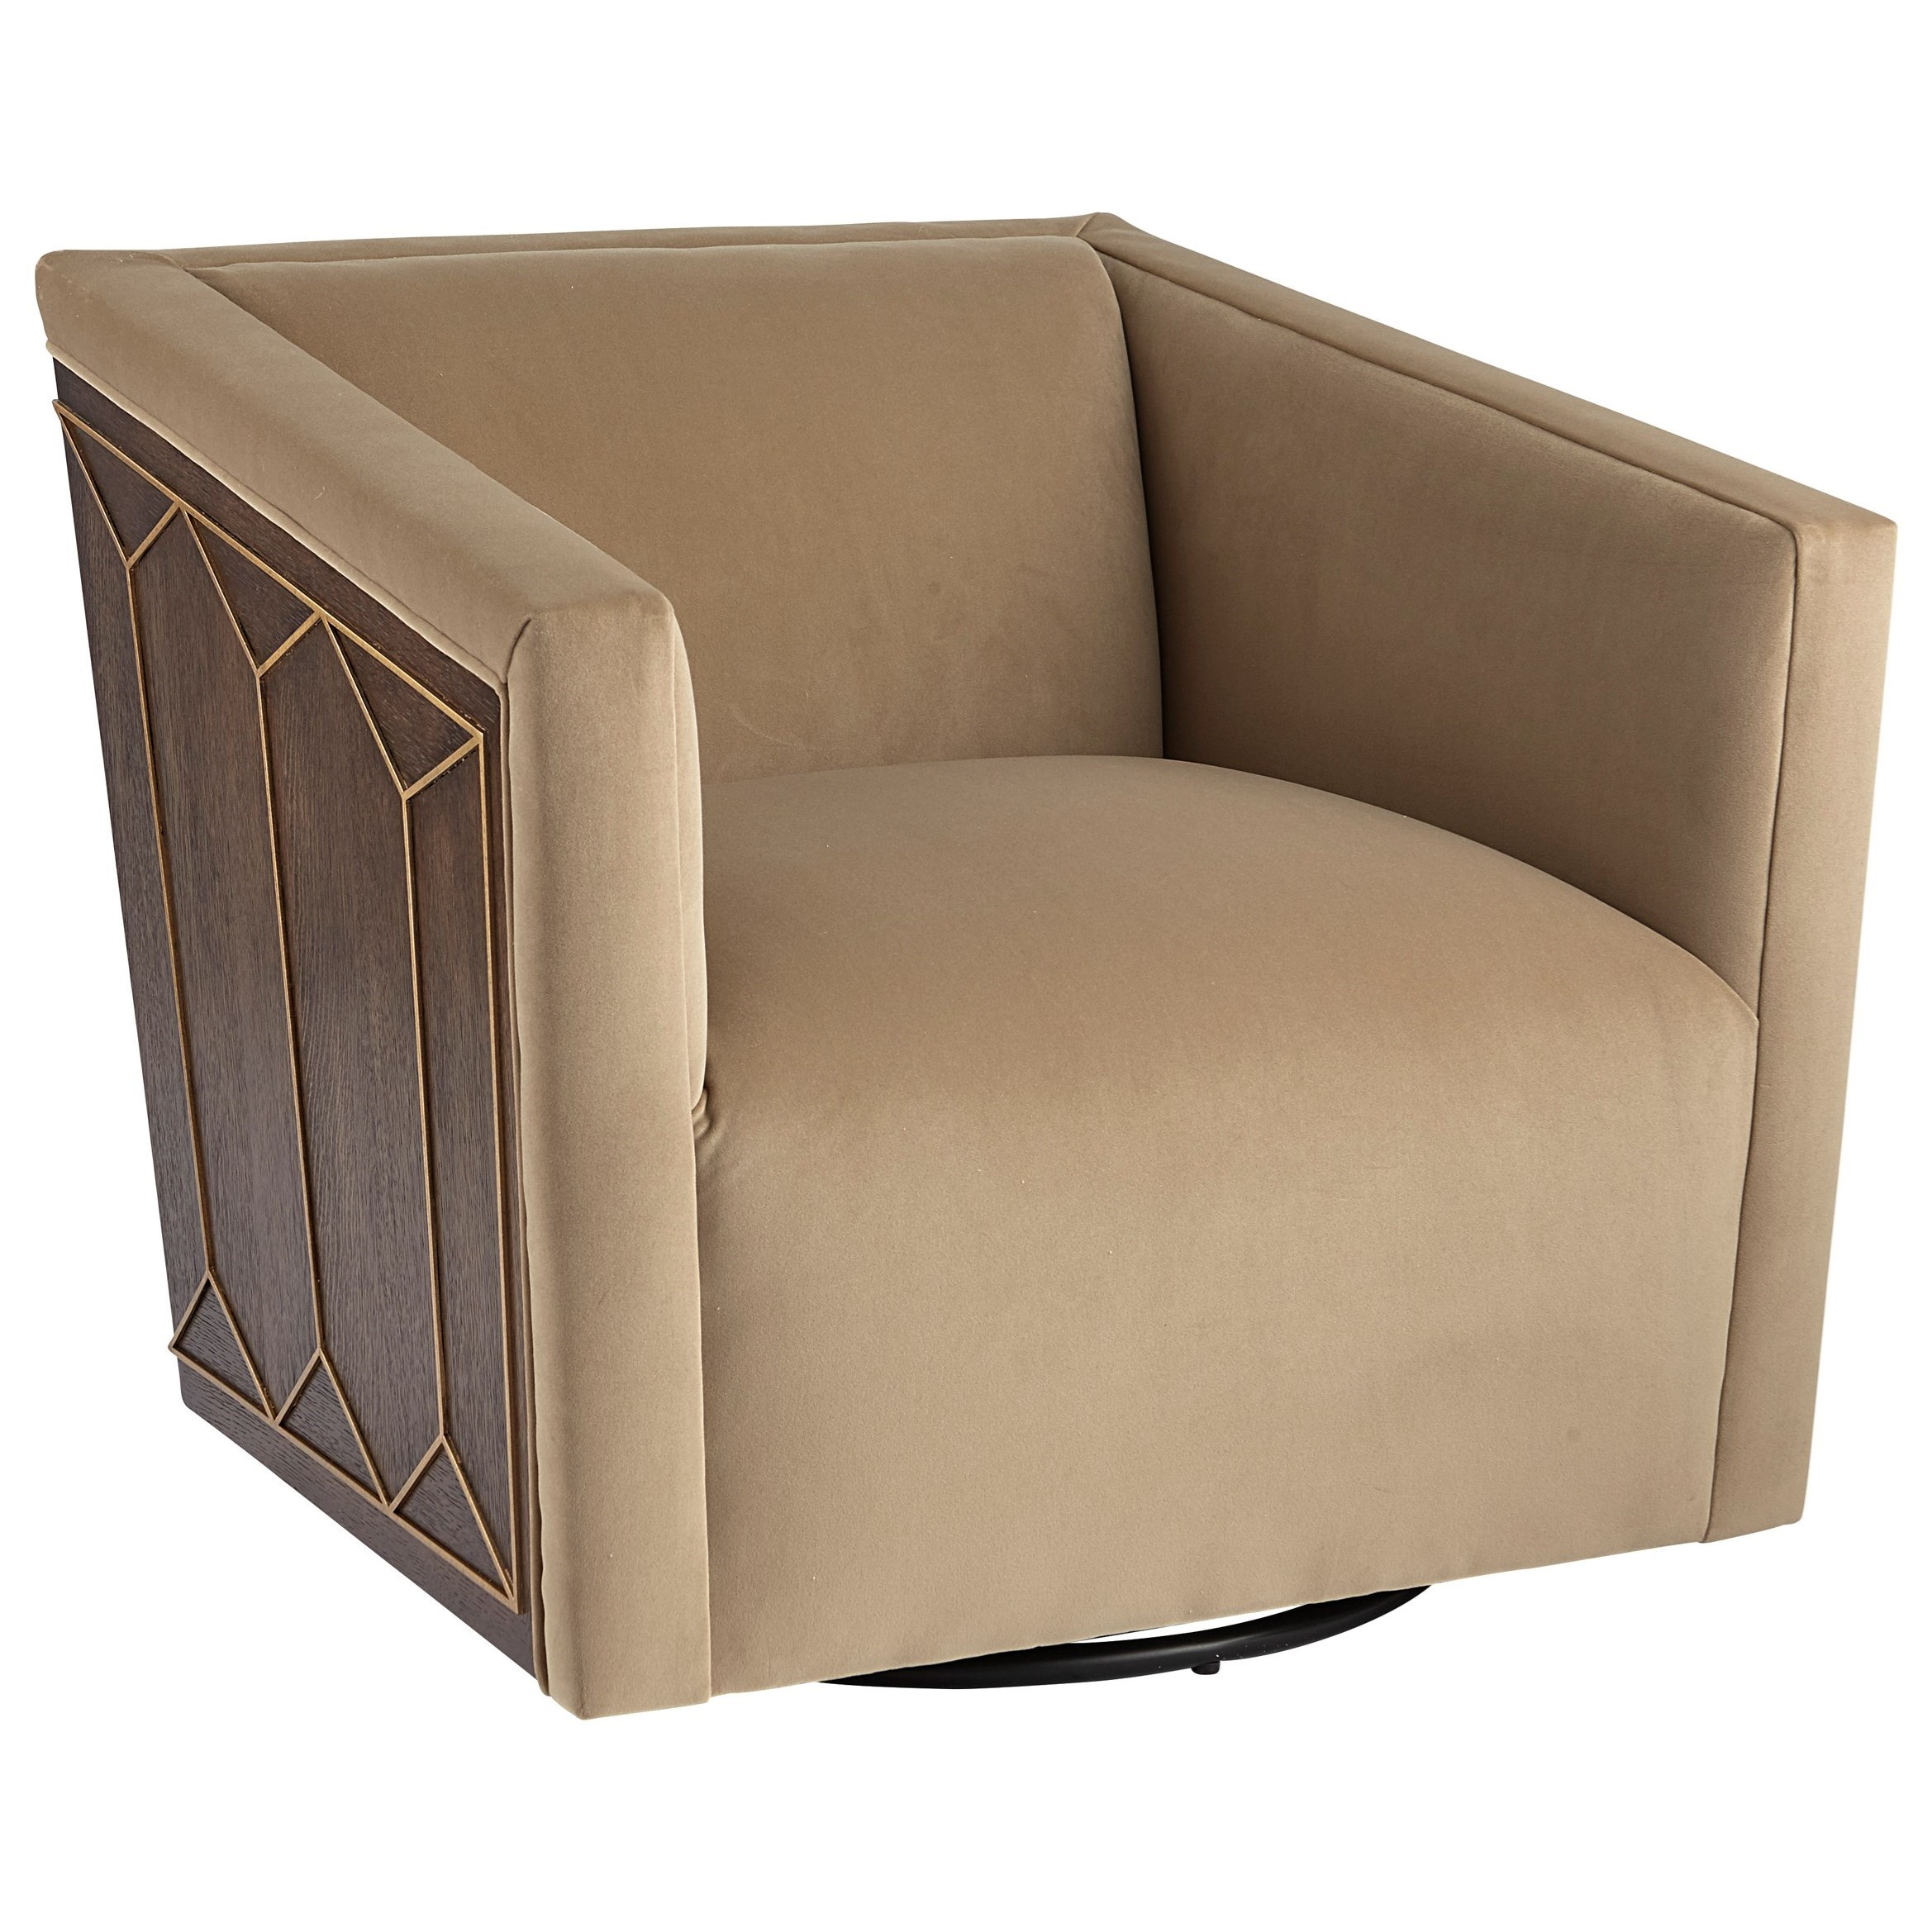 WoodWright Upholstery Upholstered Swivel Chair by A.R.T. Furniture Inc at Home Collections Furniture